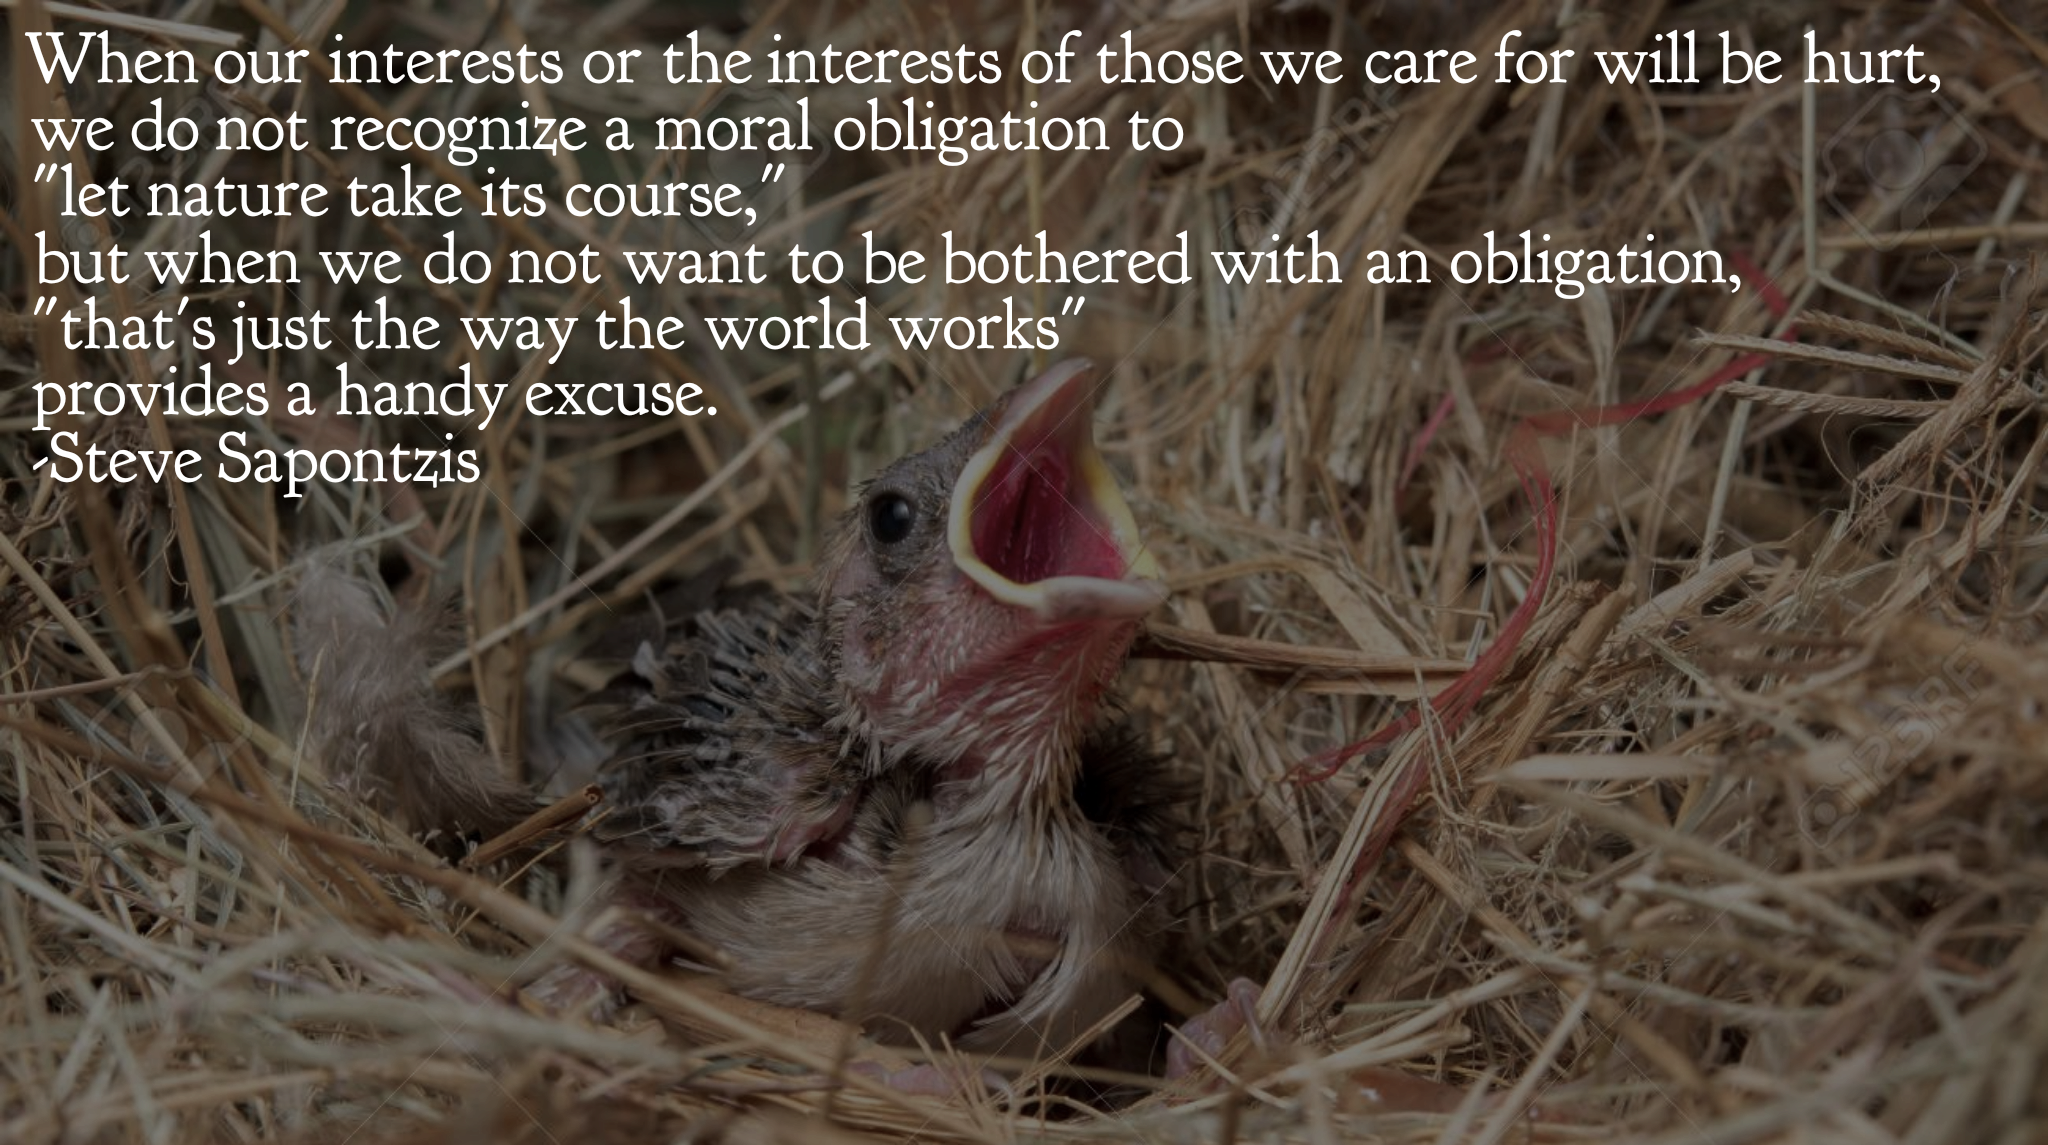 """When our interests or the interests of those we care for will be hurt, we do not recognize a moral obligation to 'let nature take its course'…"" -Steve Sapontzis [2048×1145]"